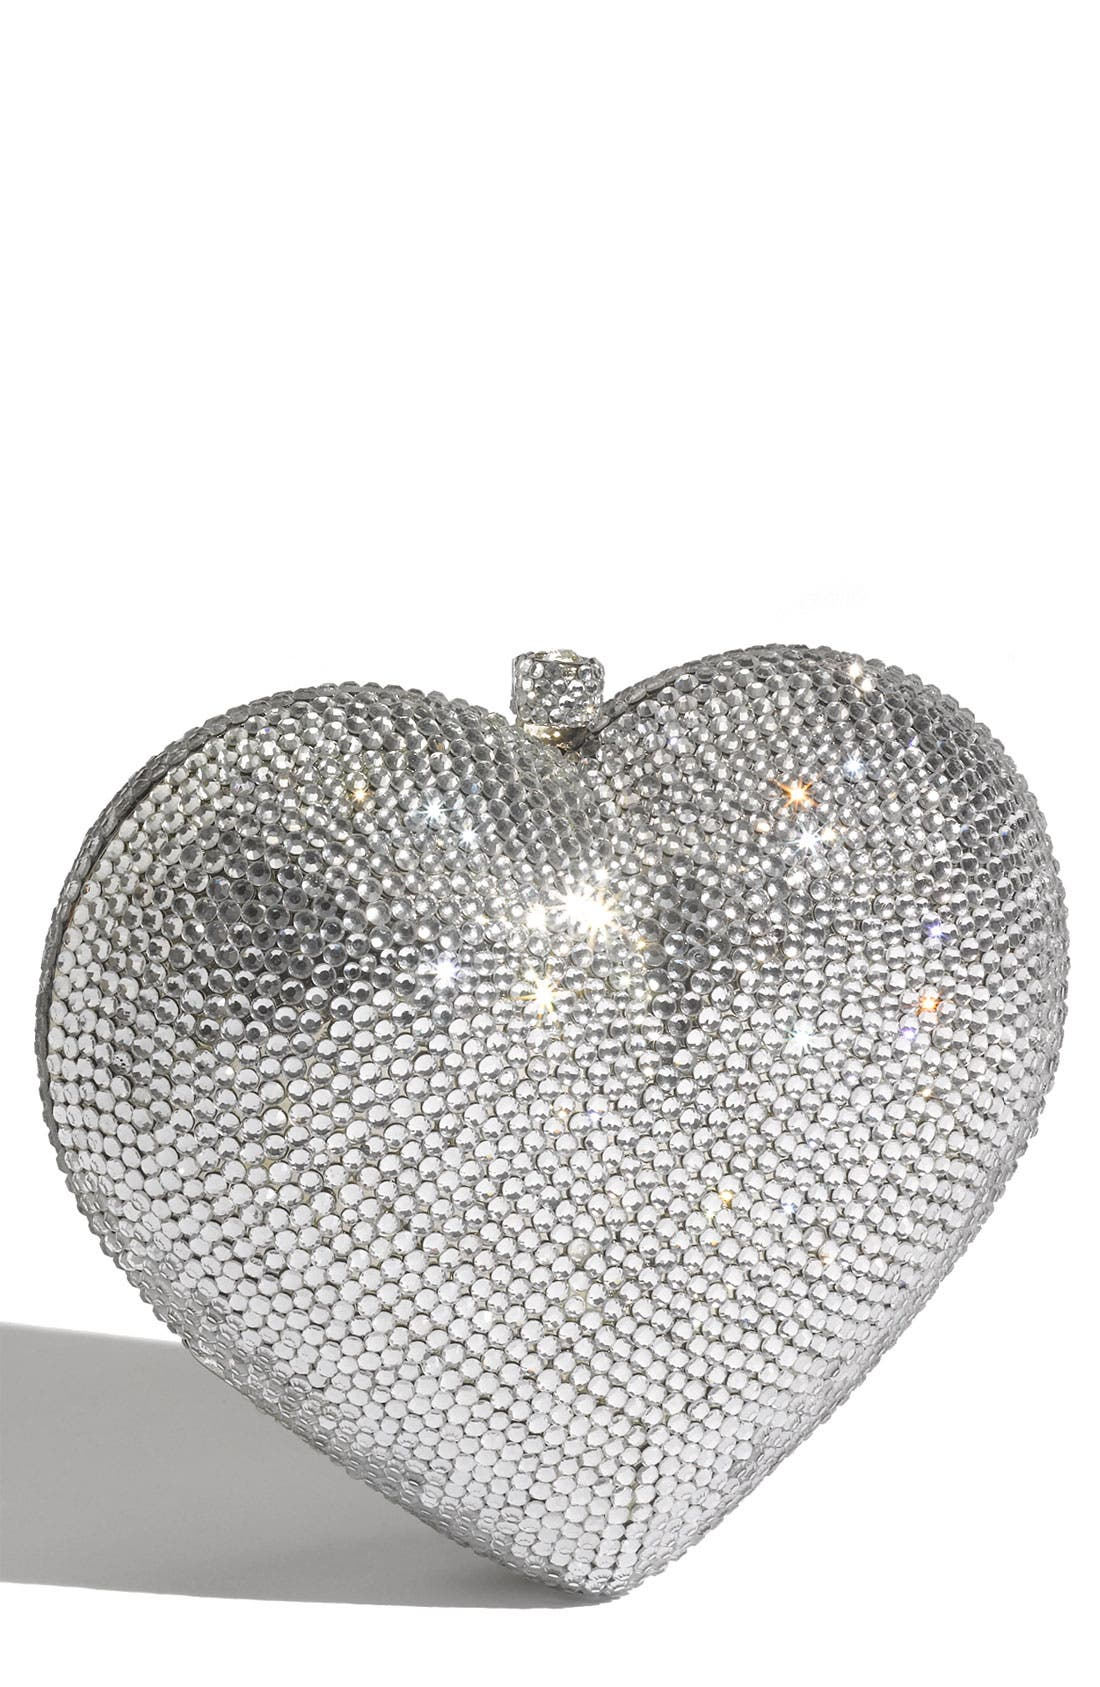 Main Image - Tasha 'Heart' Clutch